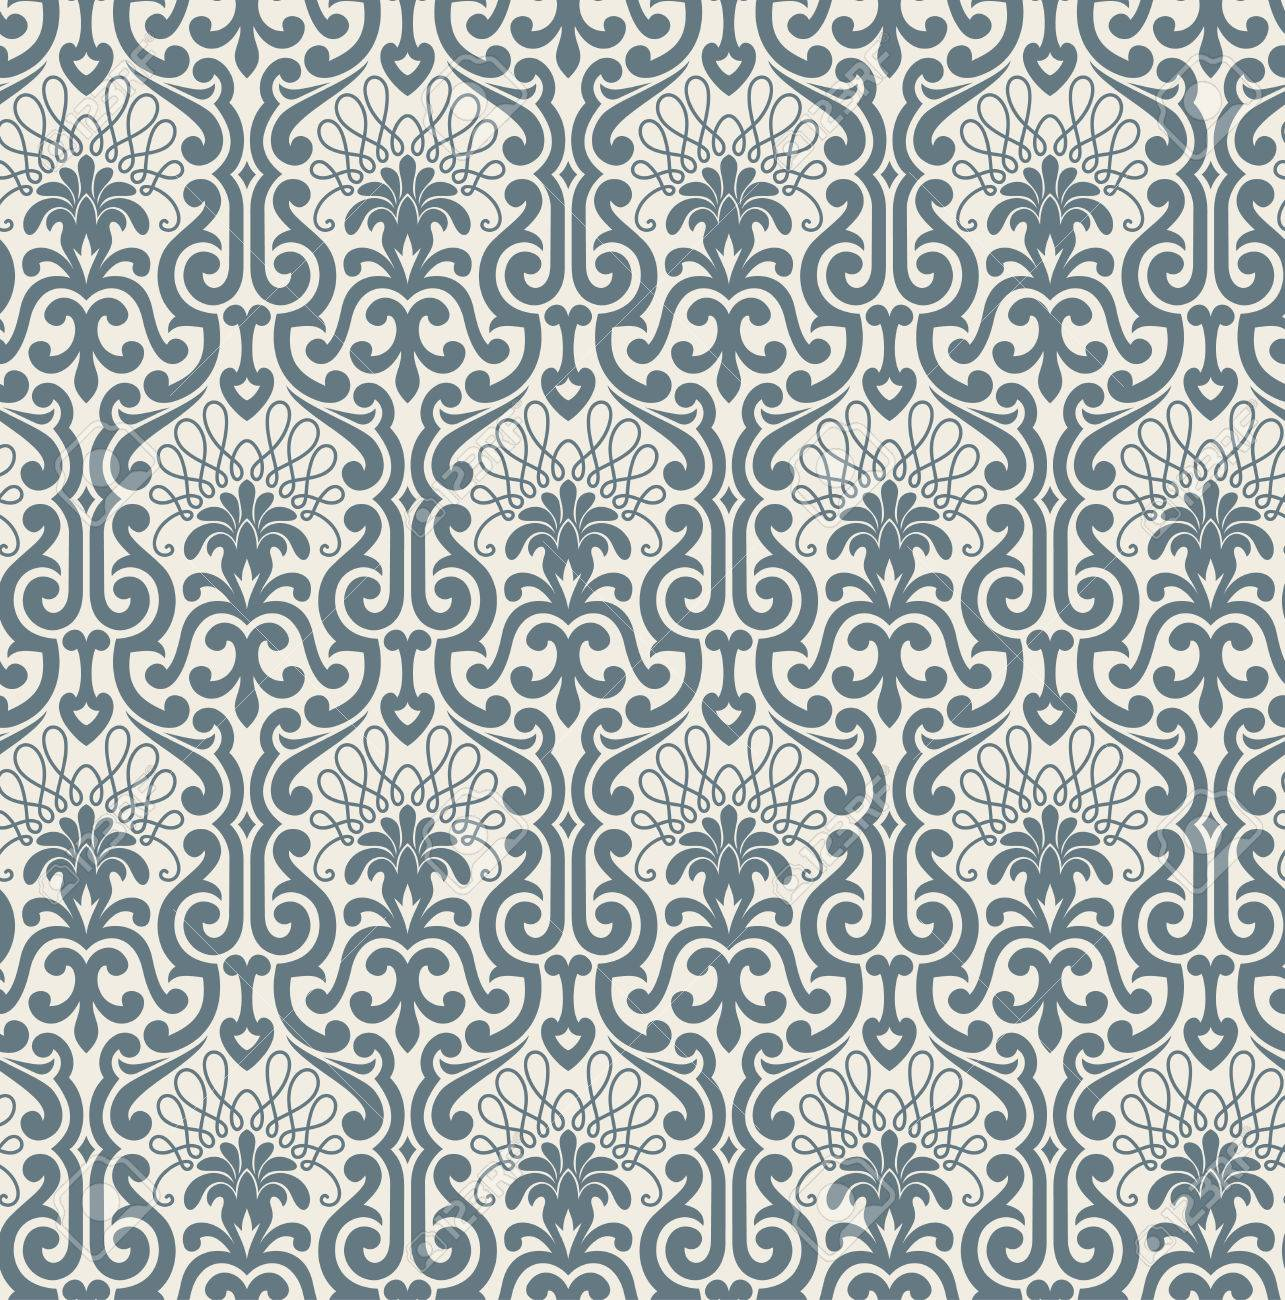 Seamless background from a floral ornament, Fashionable modern wallpaper or textile Stock Vector - 4578254